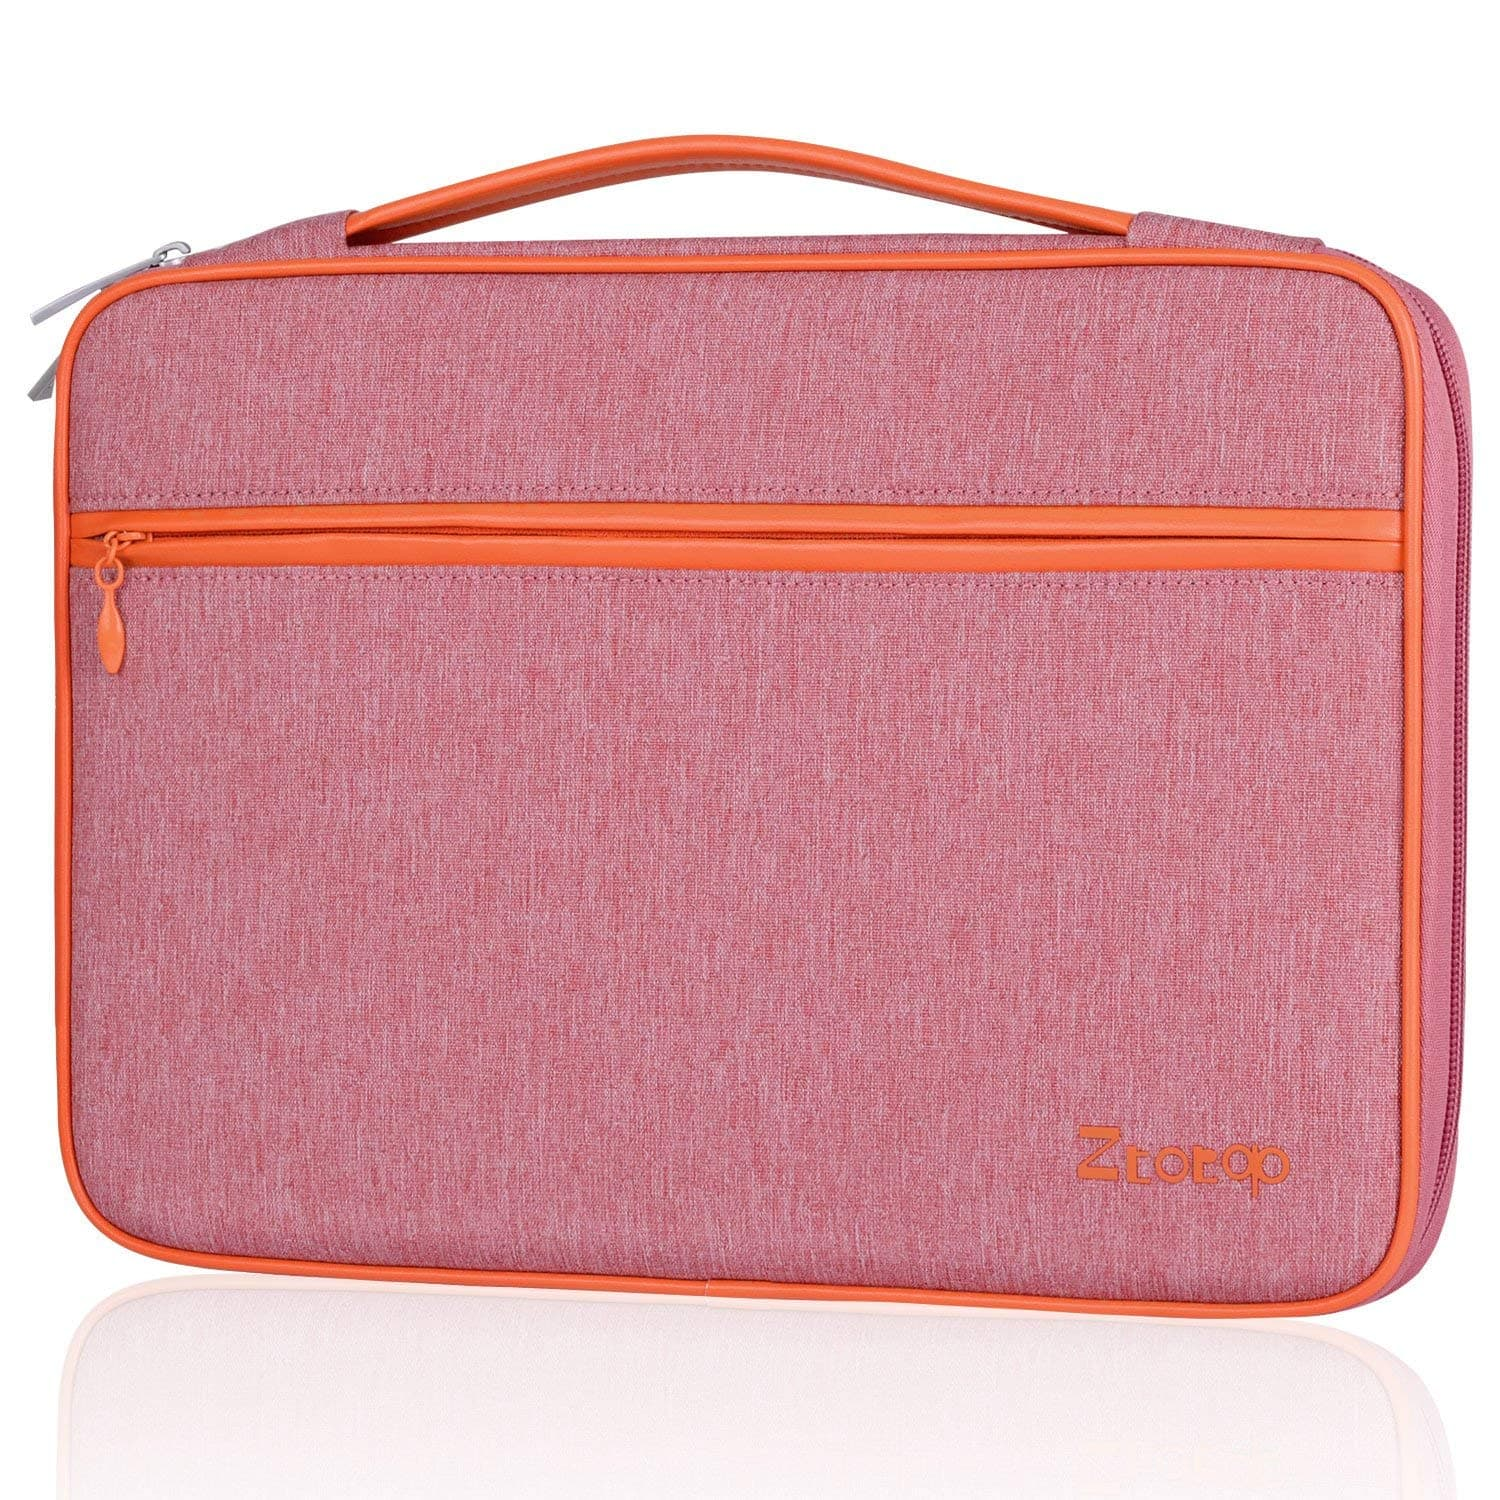 Laptop sleeve Case Cover Bag For 13-13.5